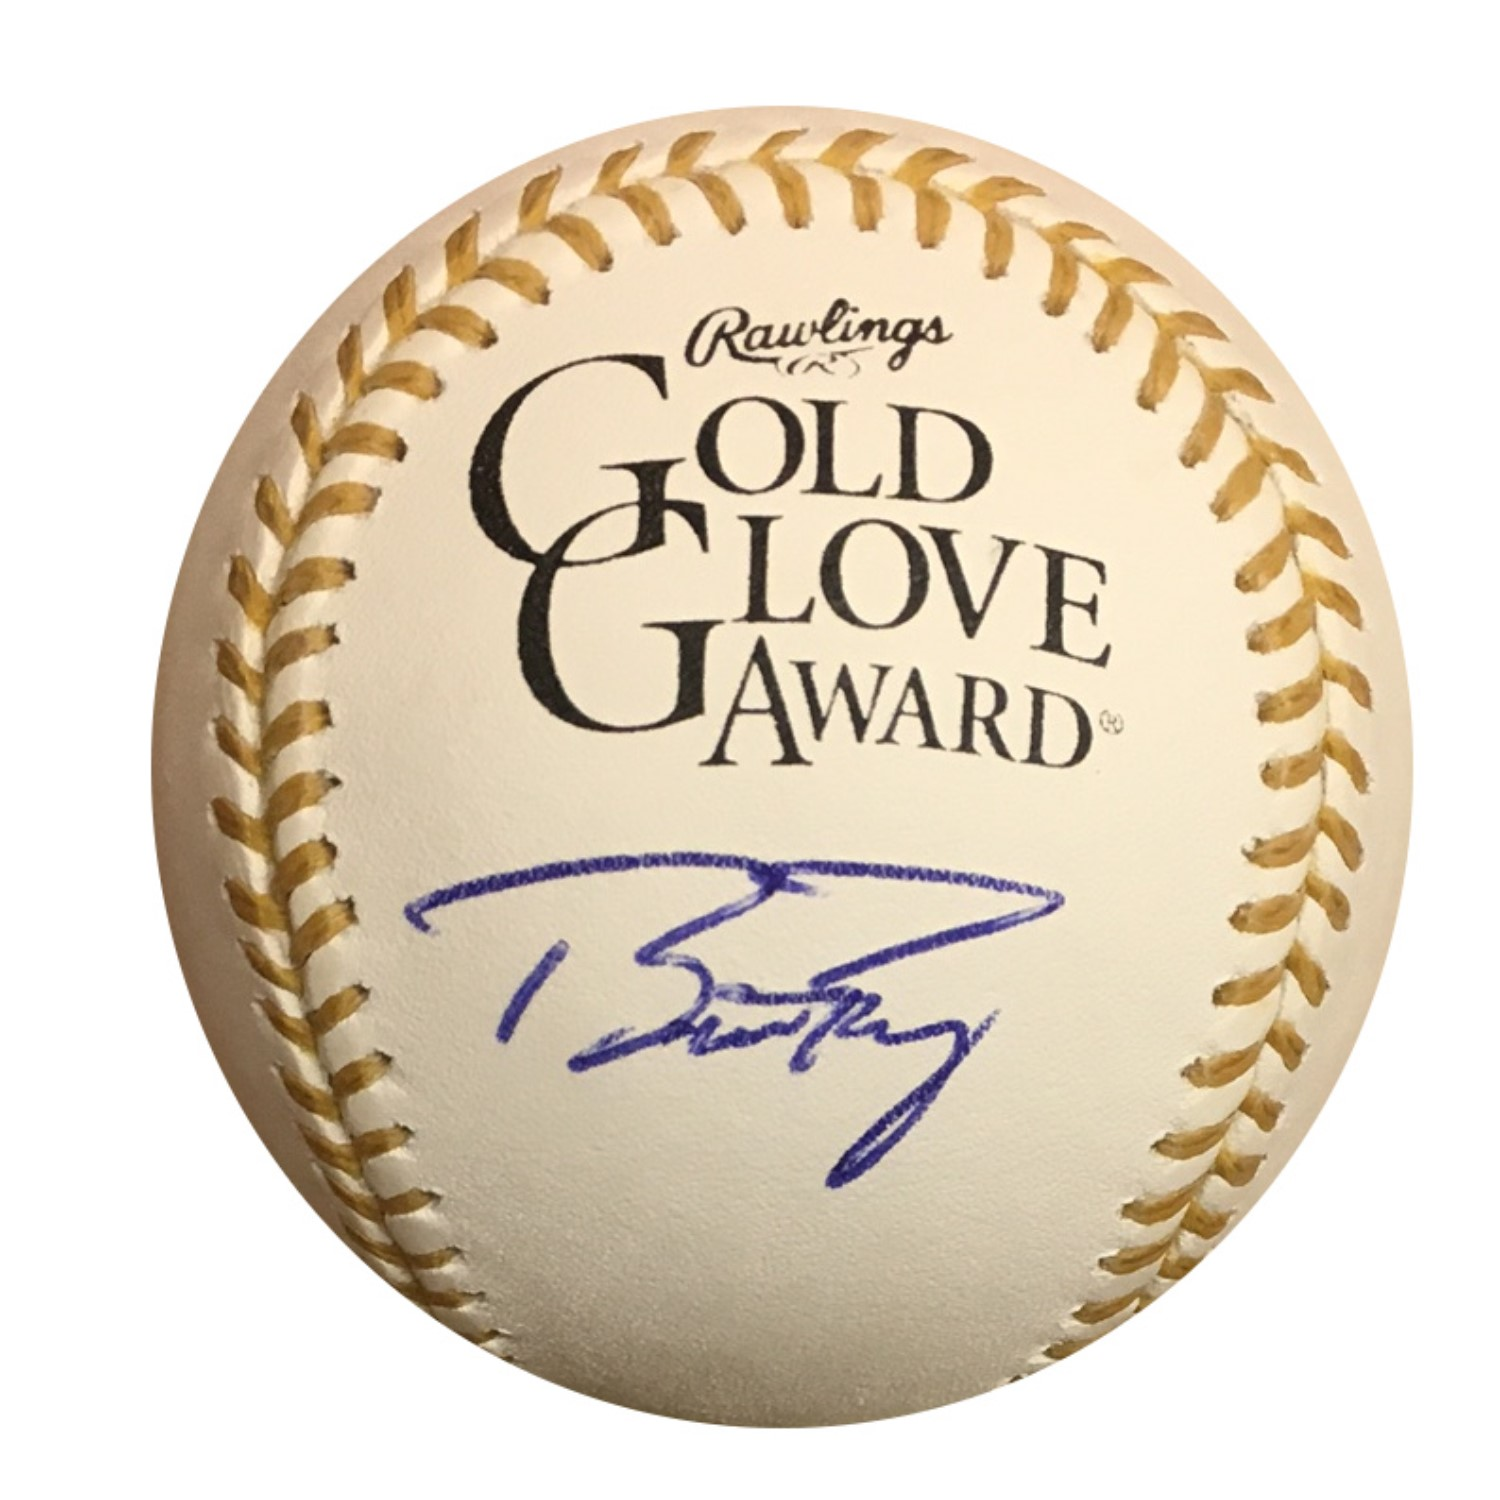 Buster Posey Autographed Gold Glove Signed Baseball JSA COA San Francisco Giants superstar Buster Posey has signed this official MLB Gold Glove baseball (Posey has won the award numerous times). Autograph is authenticated by James Spence Authentication (JSA), the world's leading authenticator of sports autographs. Comes with their unique sticker # fixed to the item and verified on their website. Also, comes with their certificate of authenticity with same matching #.  You will receive the EXACT item shown.